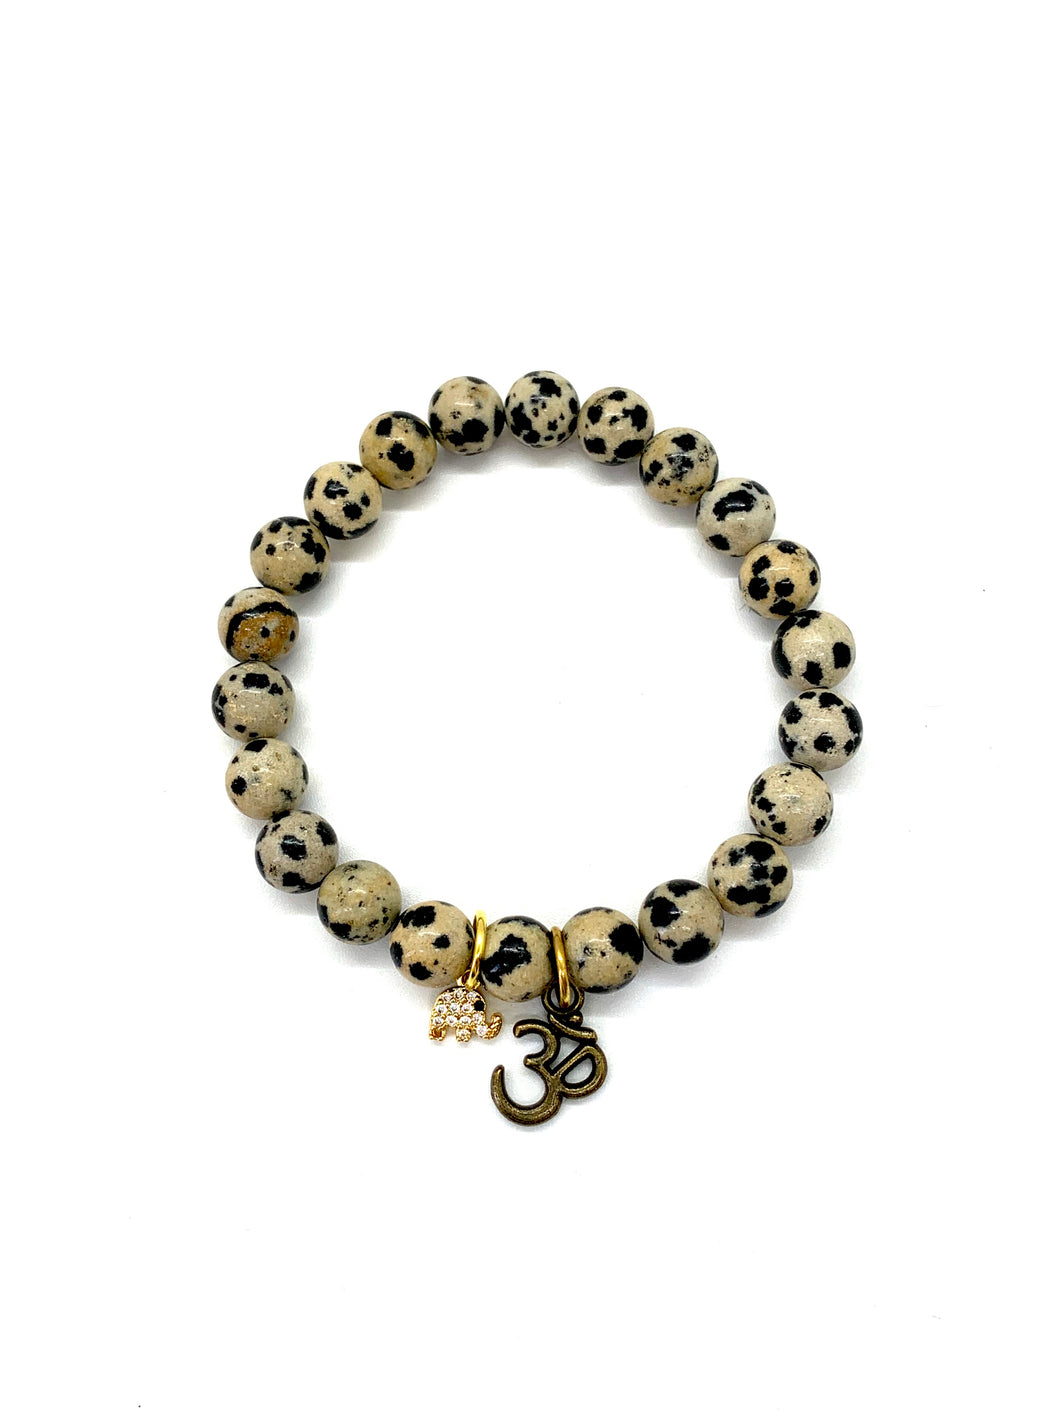 Elephant & OM Charm Bracelet for Luck & High Vibration